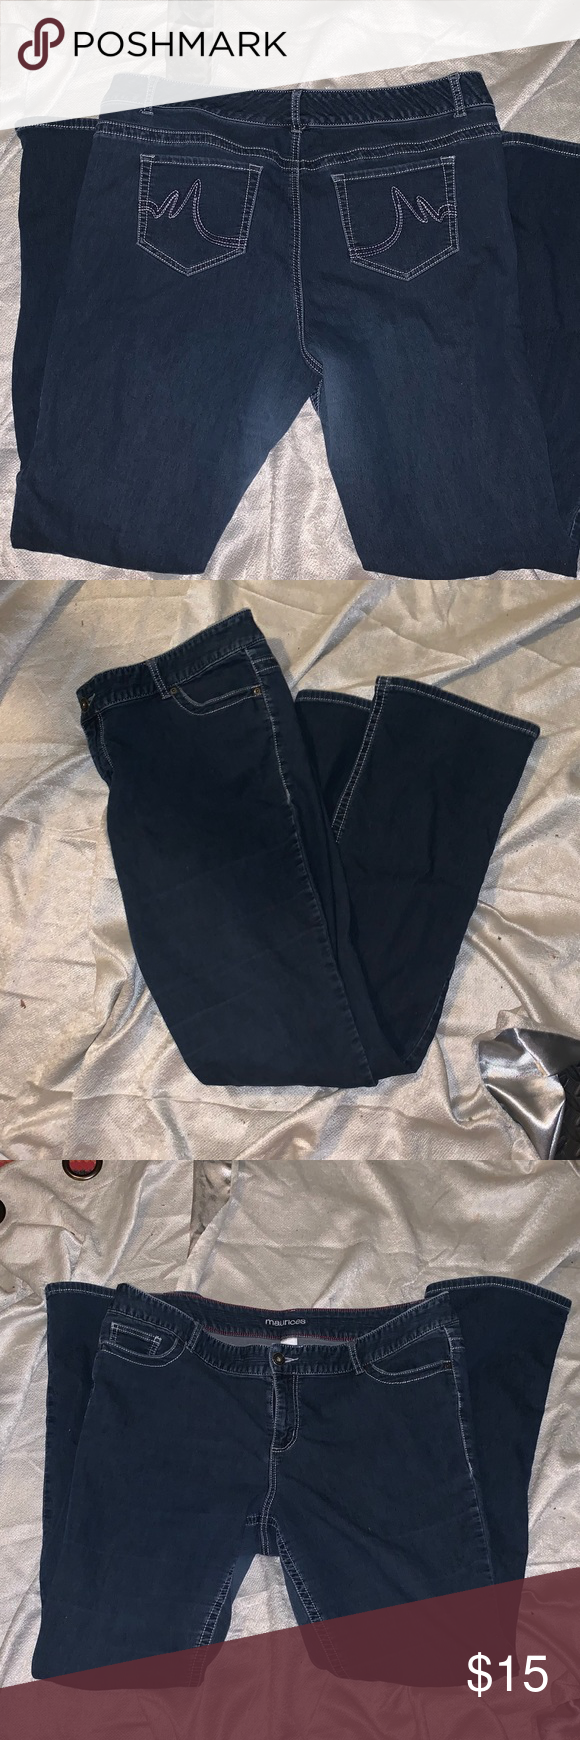 37c2063fa4f27 Maurices Jeans size 20 Maurices jeans